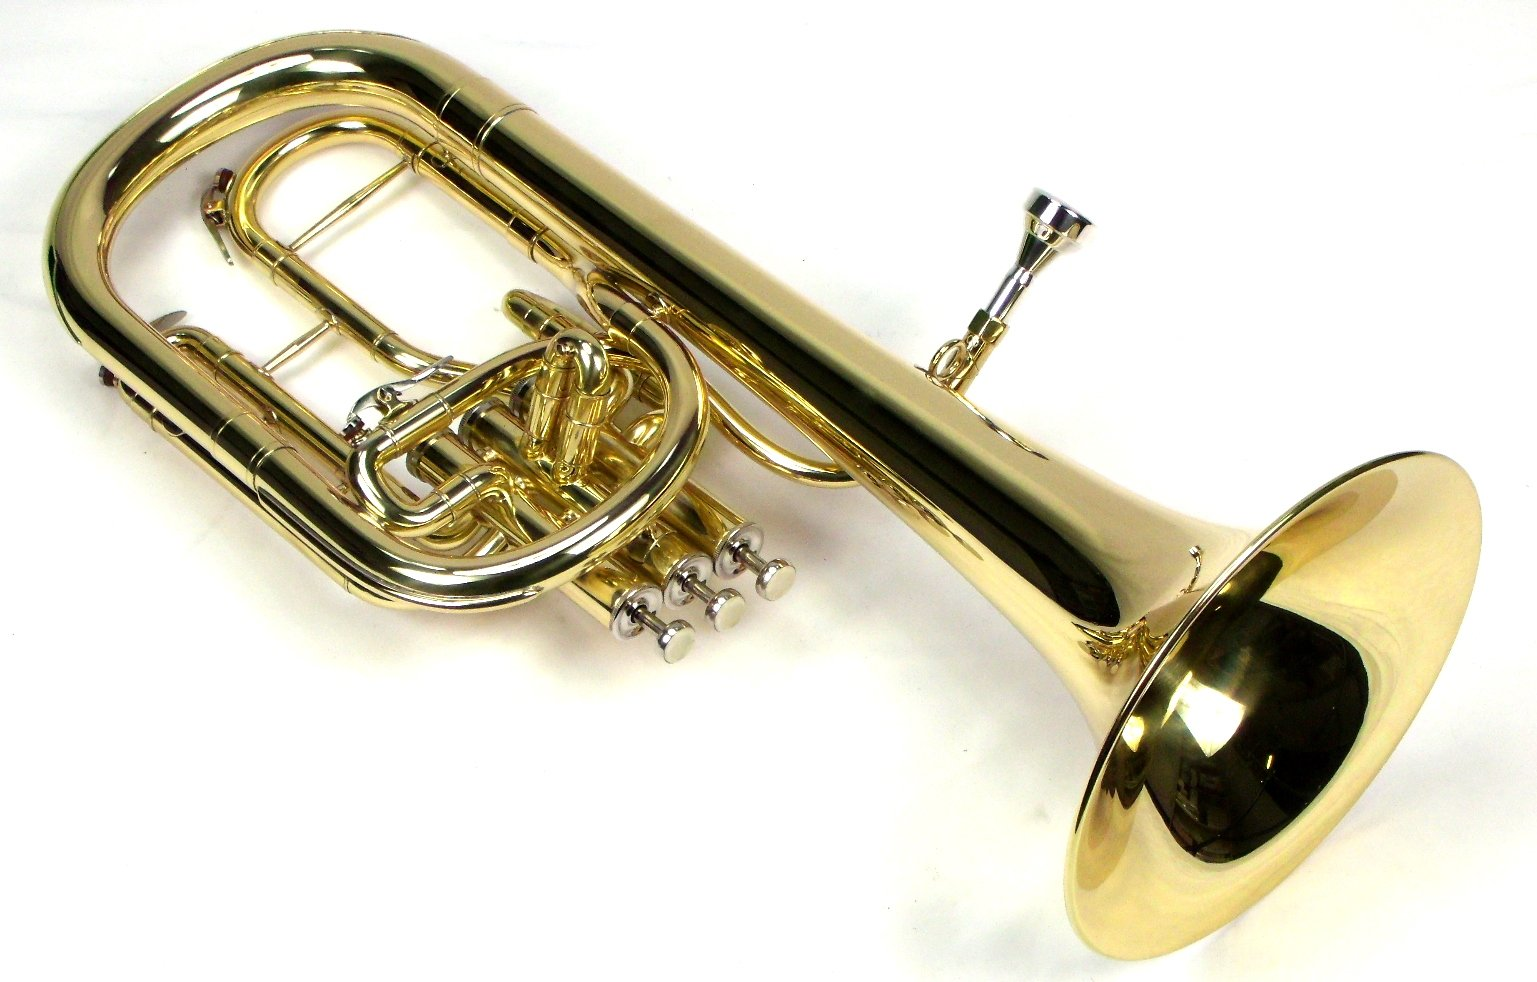 Intermediate Monel Pistons Alto Horn w/Case & Mouthpiece-Gold Lacquer Finish by Moz (Image #4)